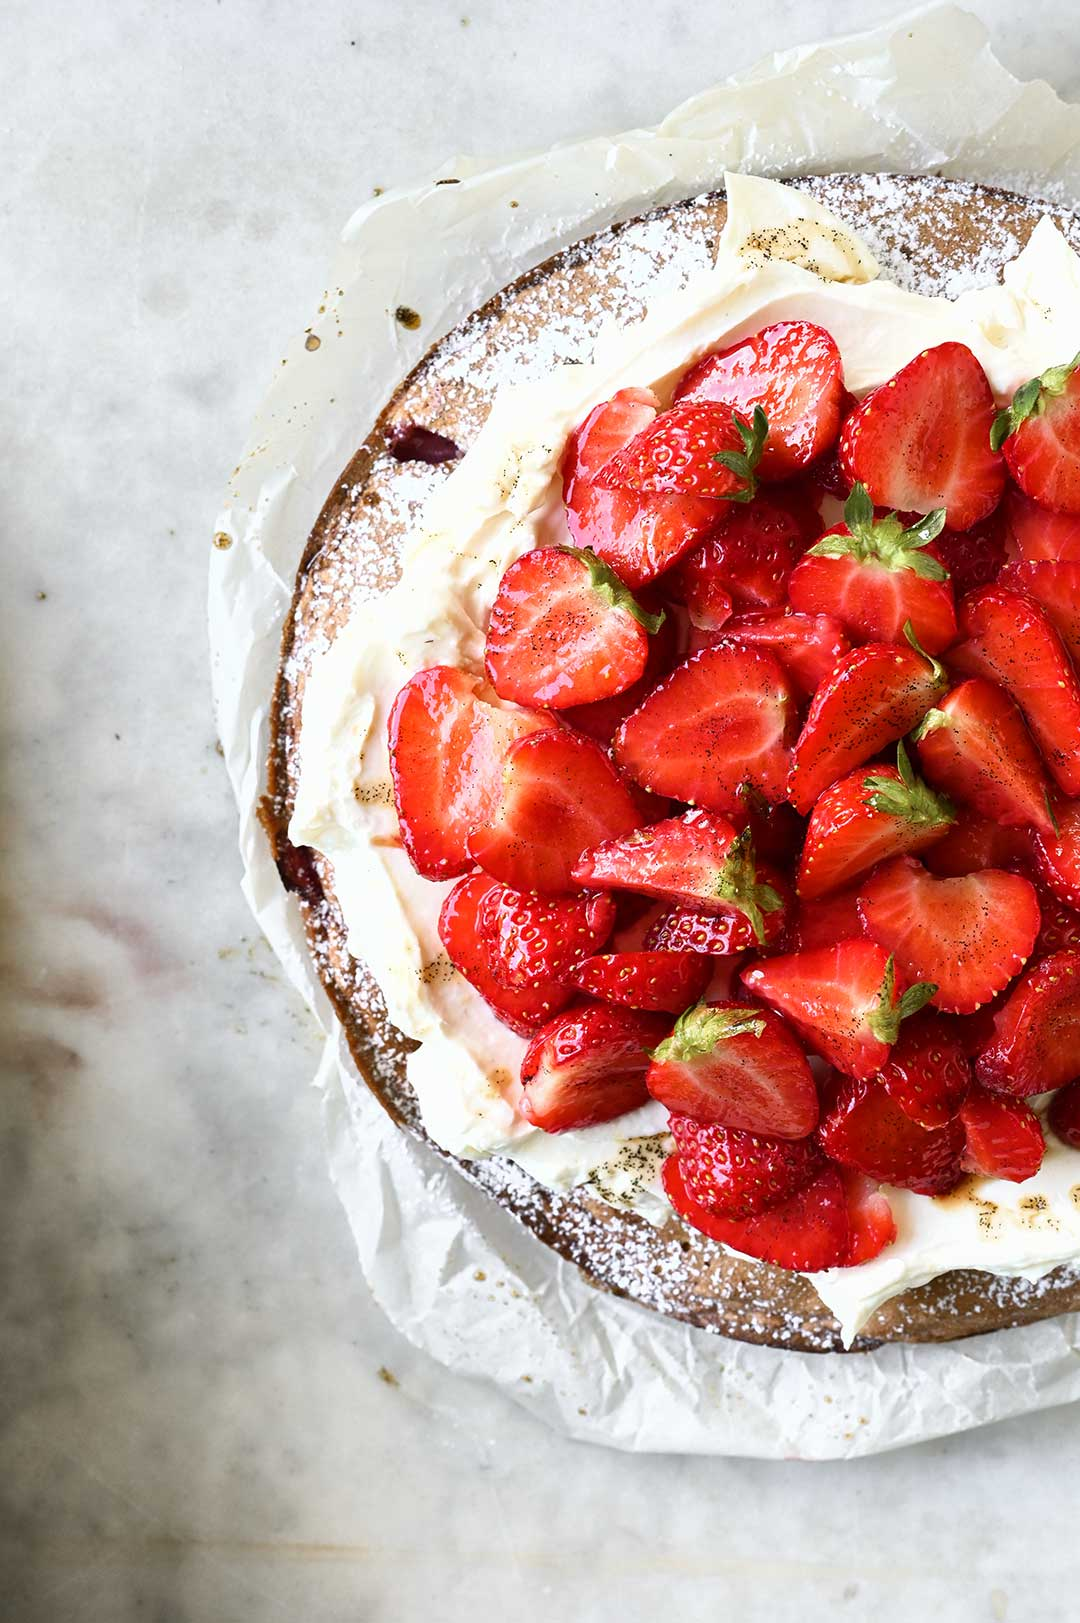 serving dumplings | Strawberry cake with mascarpone whipped cream